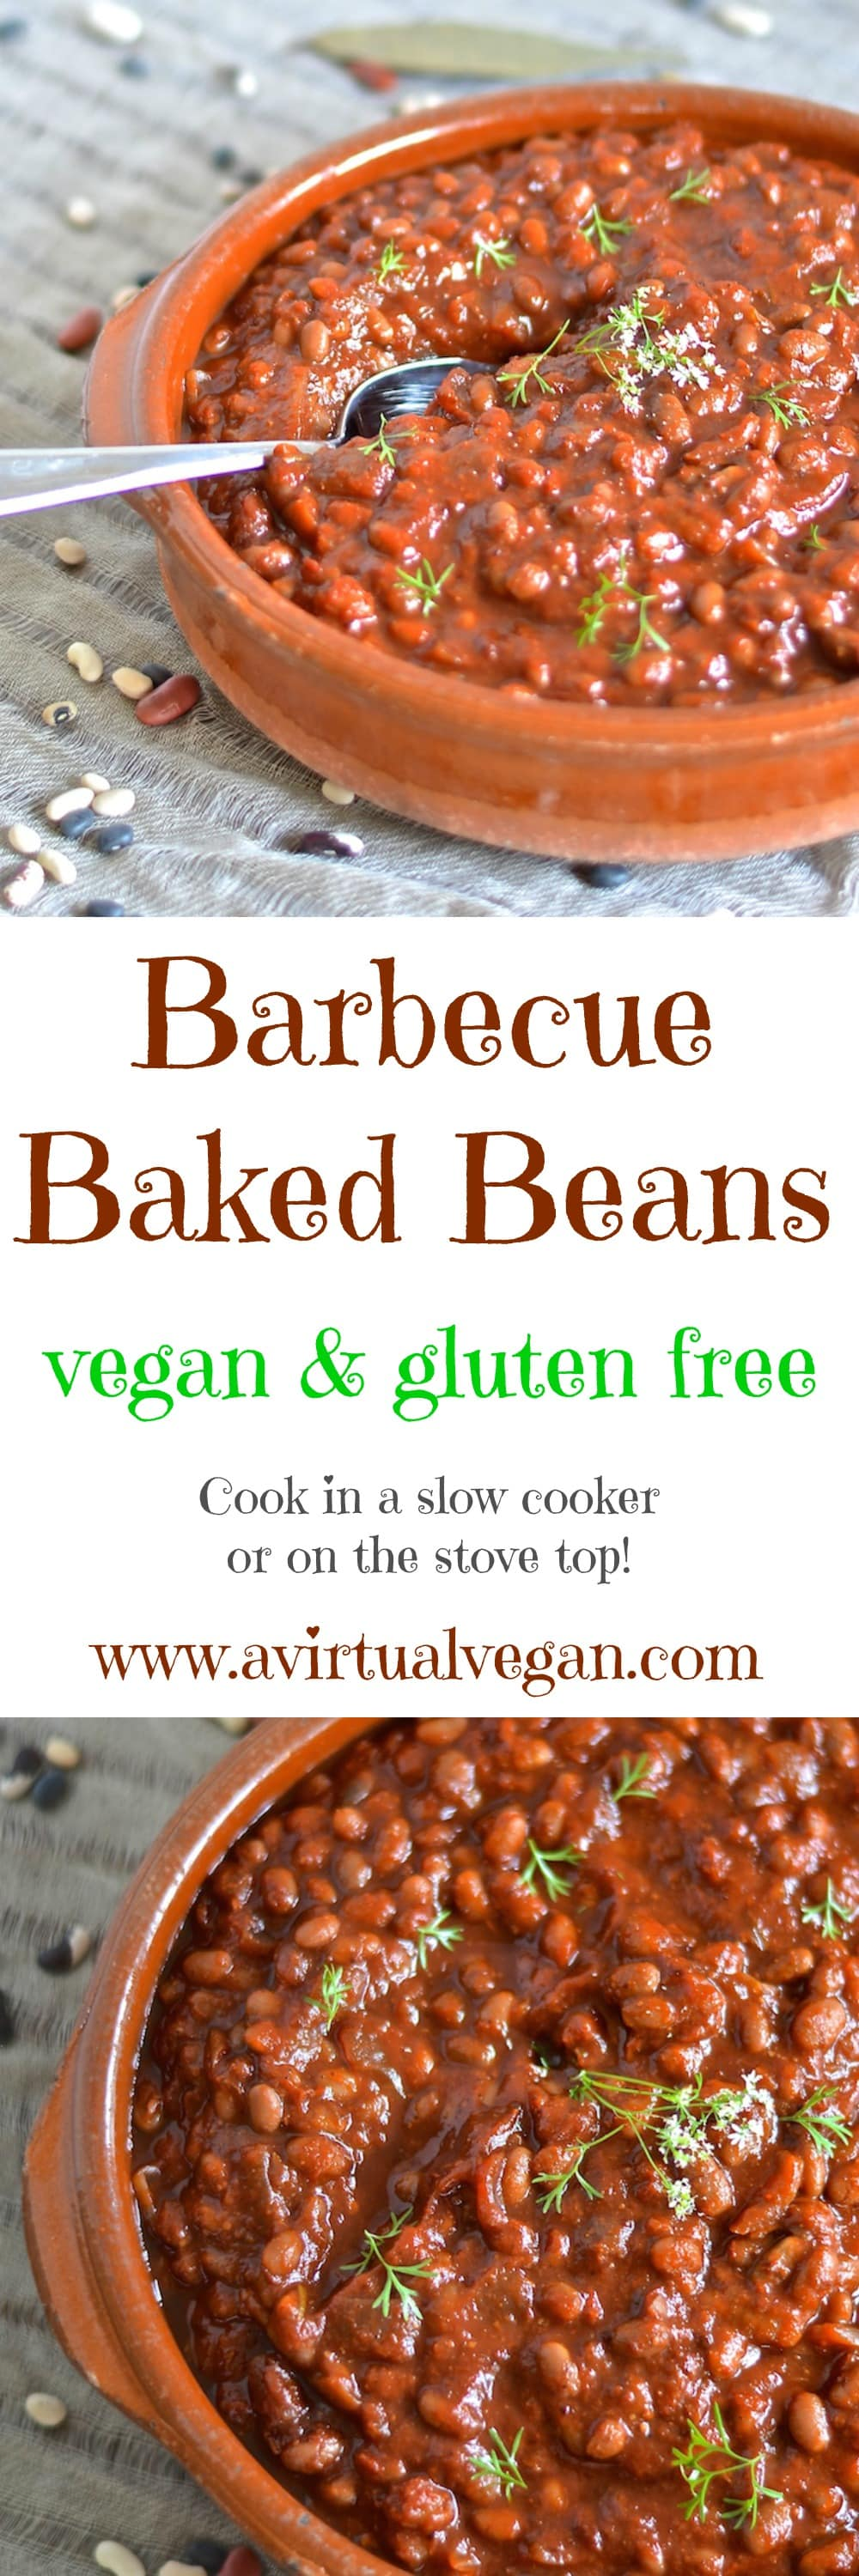 Vegan Barbecue Baked Beans - A Virtual Vegan